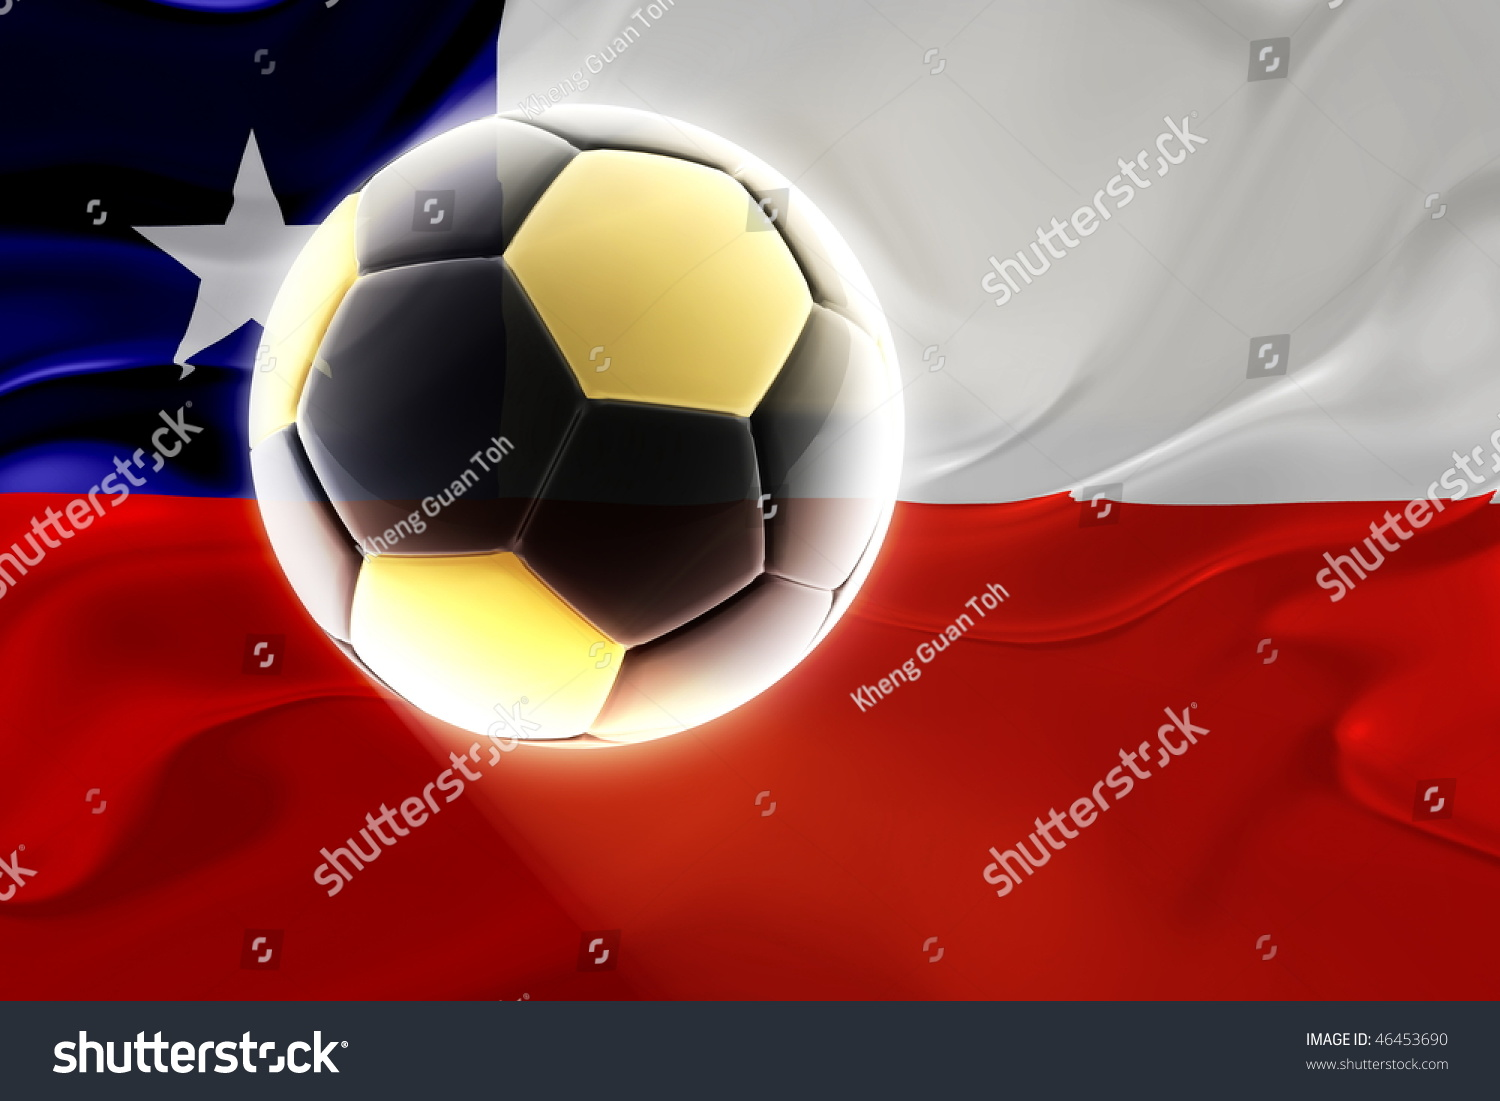 Flag chile national symbol illustration clipart stock illustration flag of chile national symbol illustration clipart wavy fabric sports soccer football biocorpaavc Images